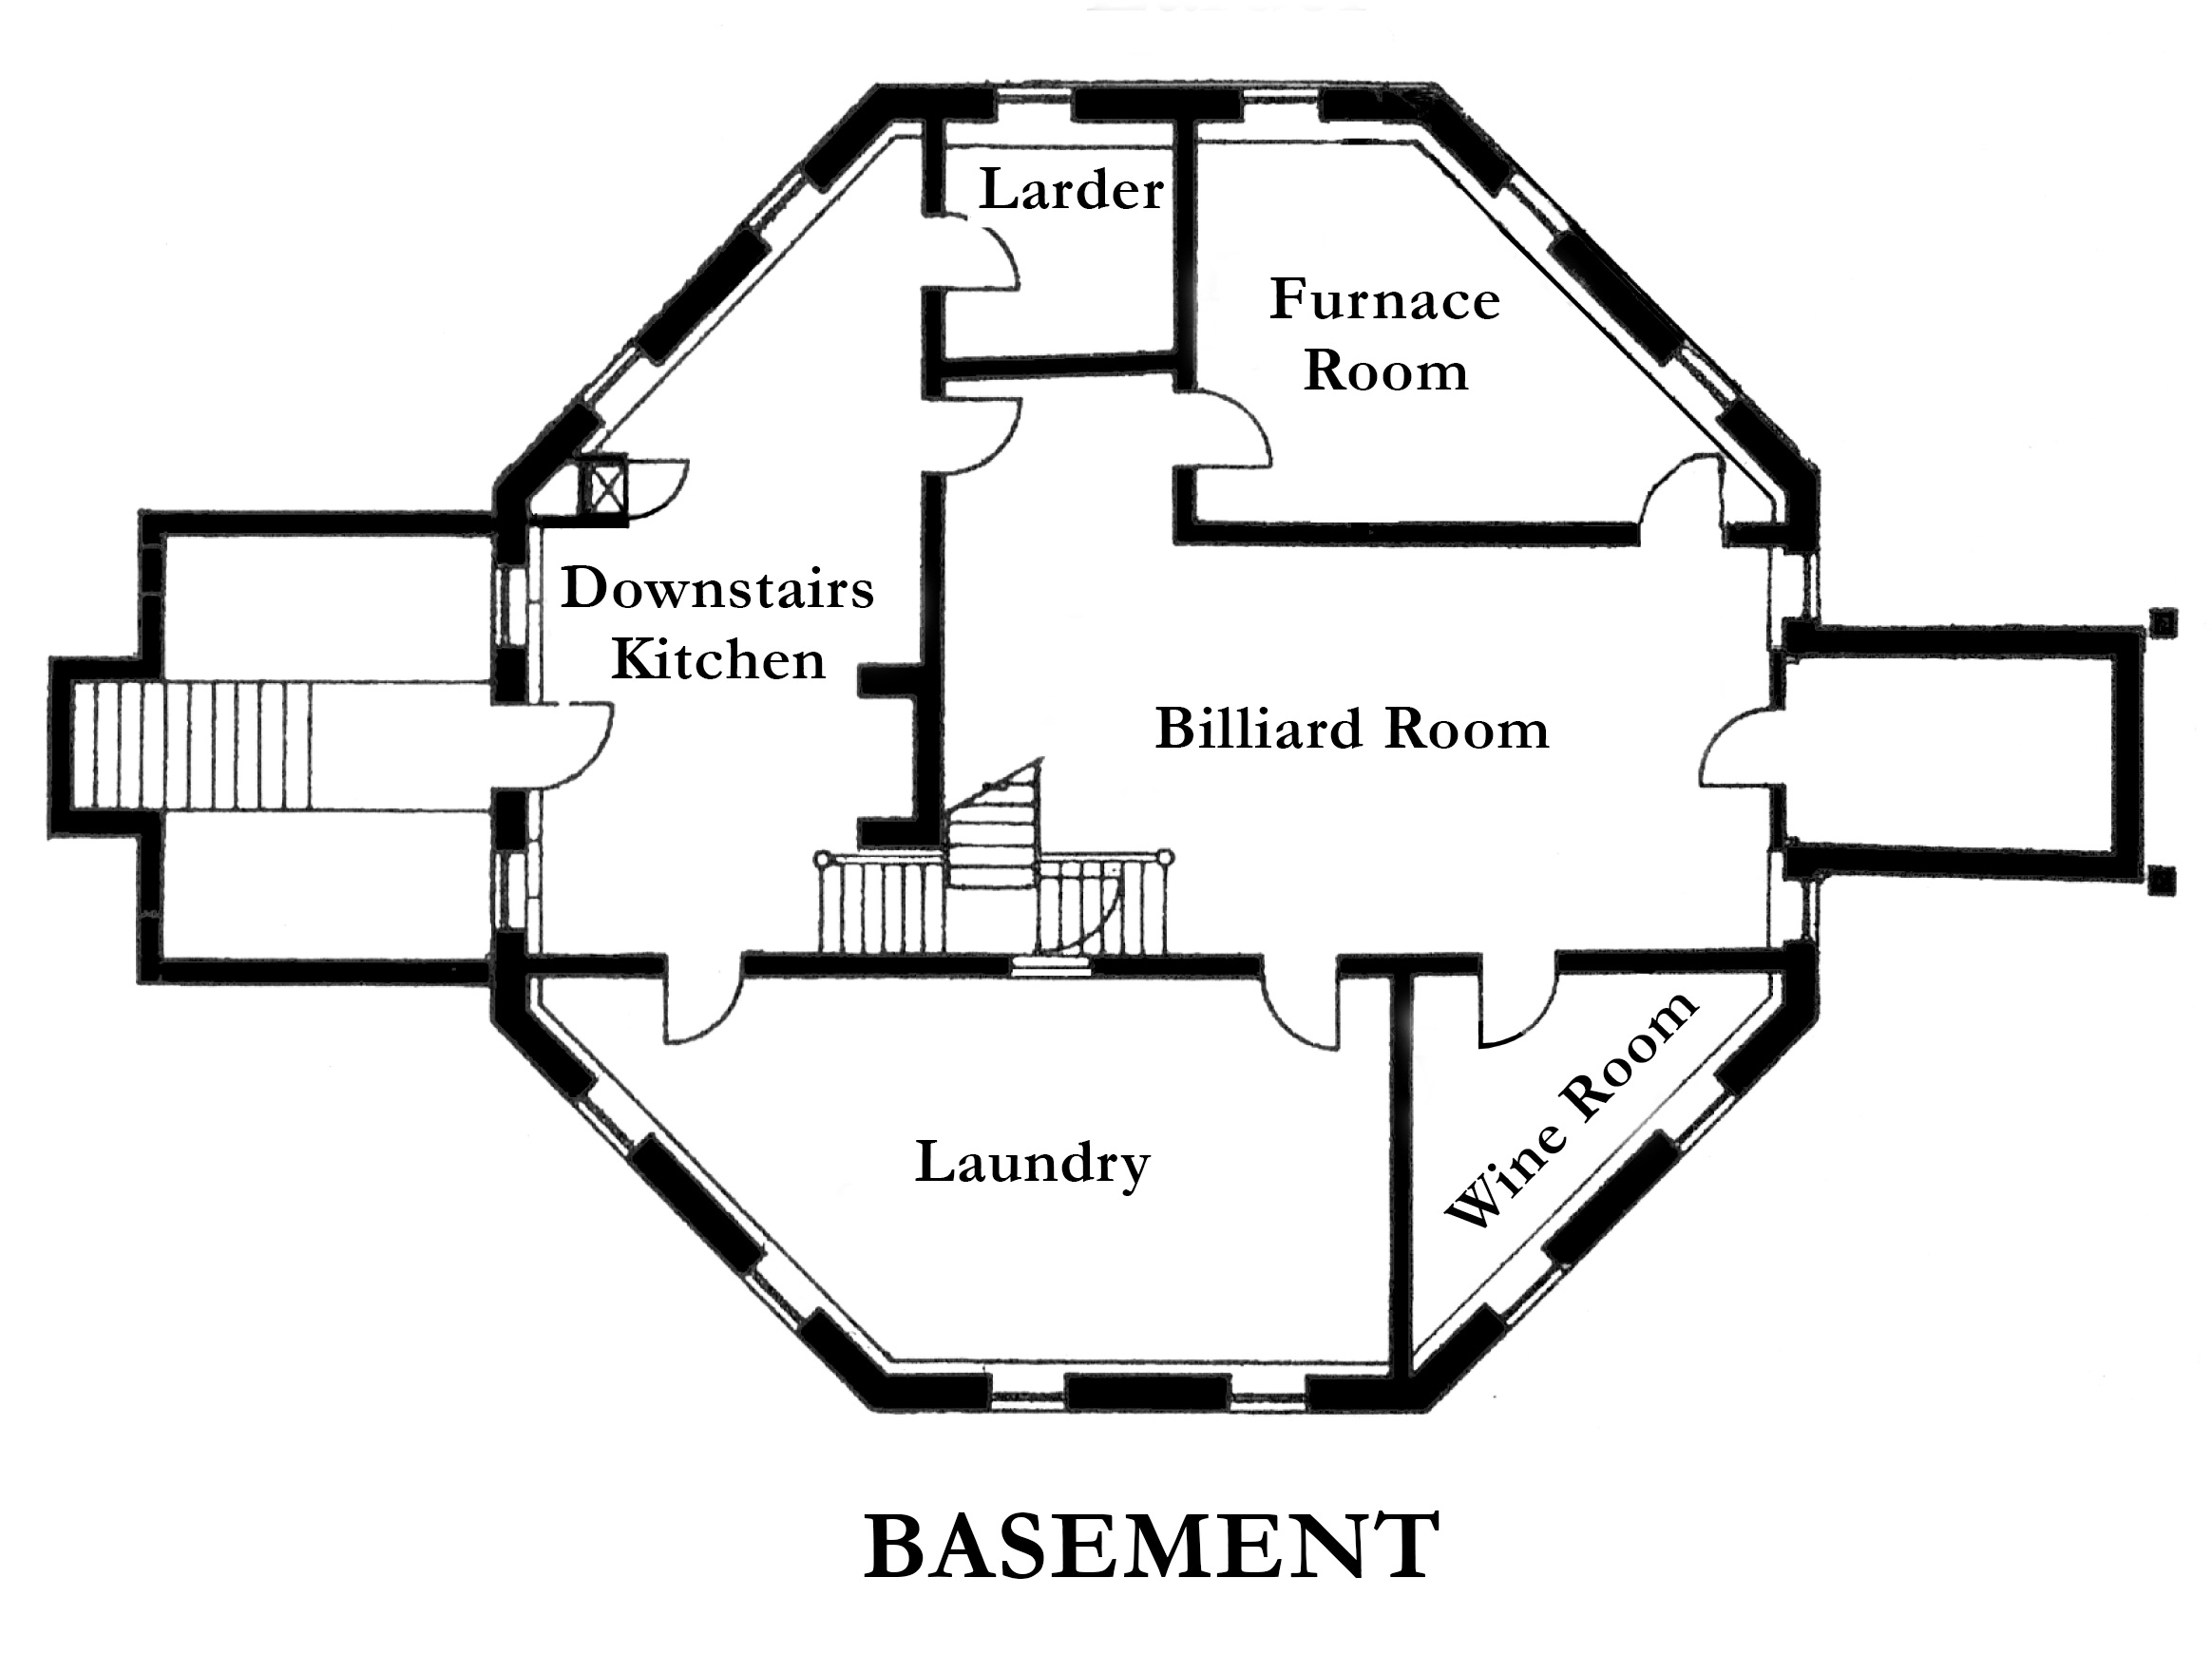 Armour-Stiner-Octagon-House-34_Basement.jpg